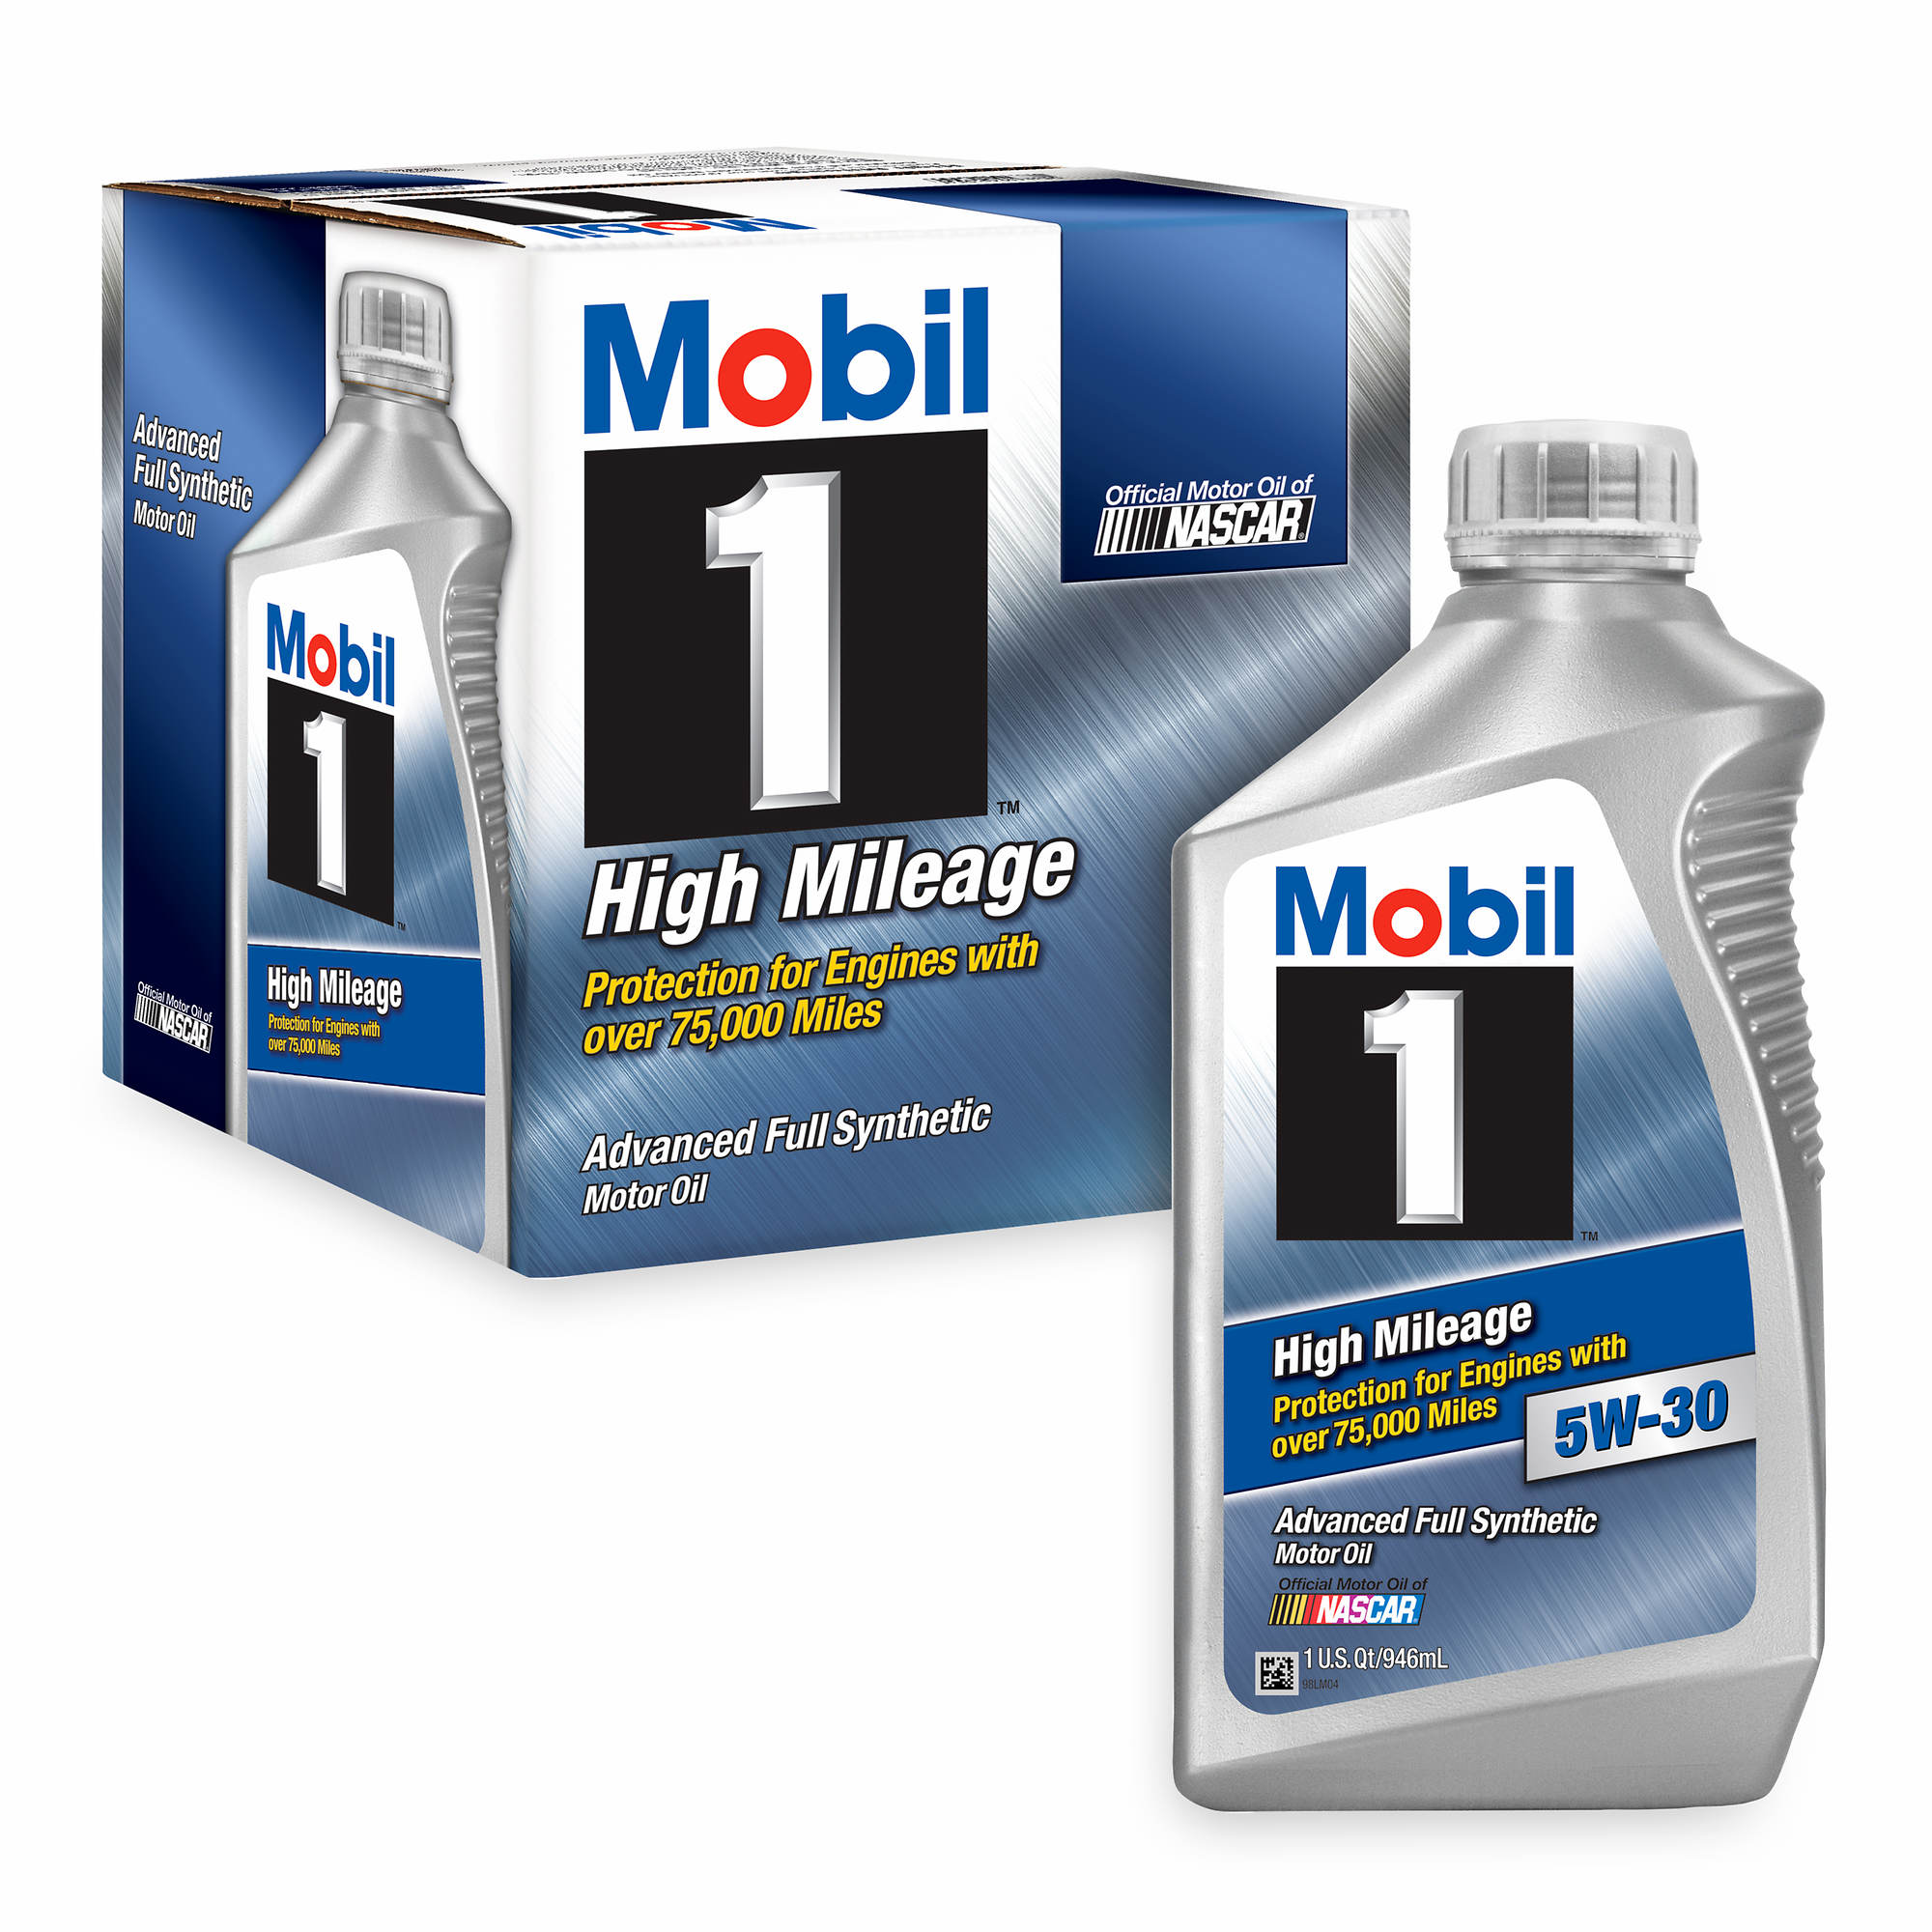 Mobil 1 5w30 high mileage synthetic motor oil 6 pk 1 qt for Wholesale motor oil prices